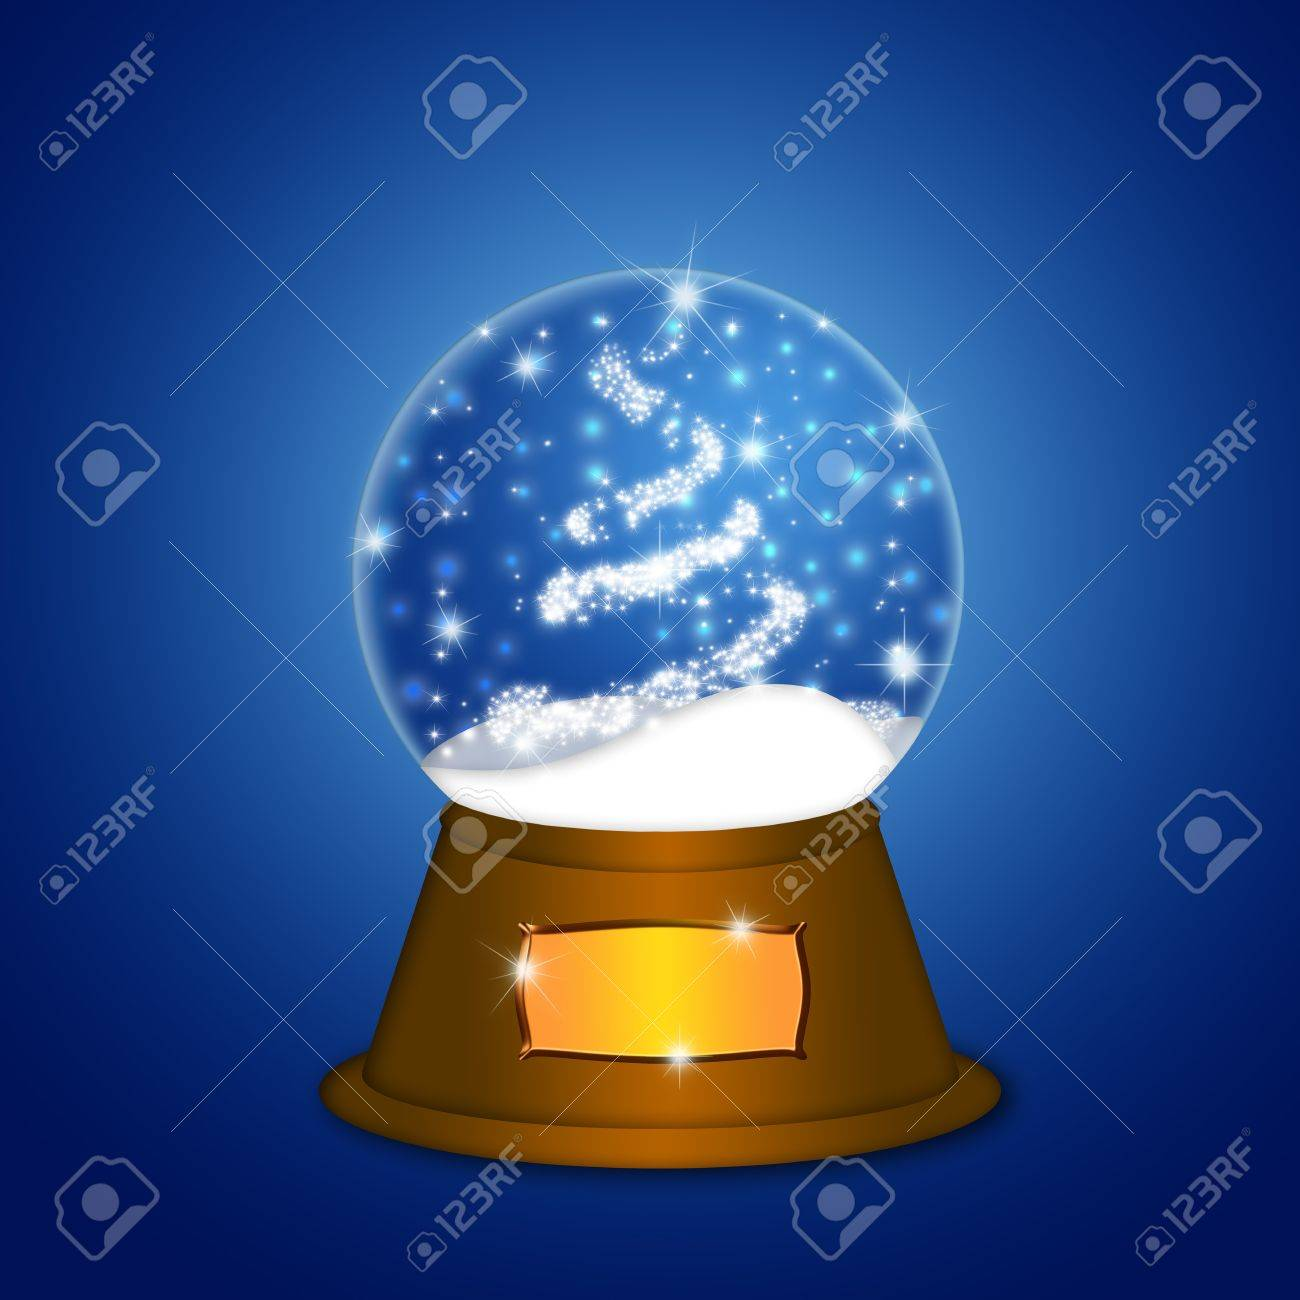 Christmas Water Snow Globe with Christmas Tree Sparkles and Snowflakes Illustration on Blue Background Stock Illustration - 11585733